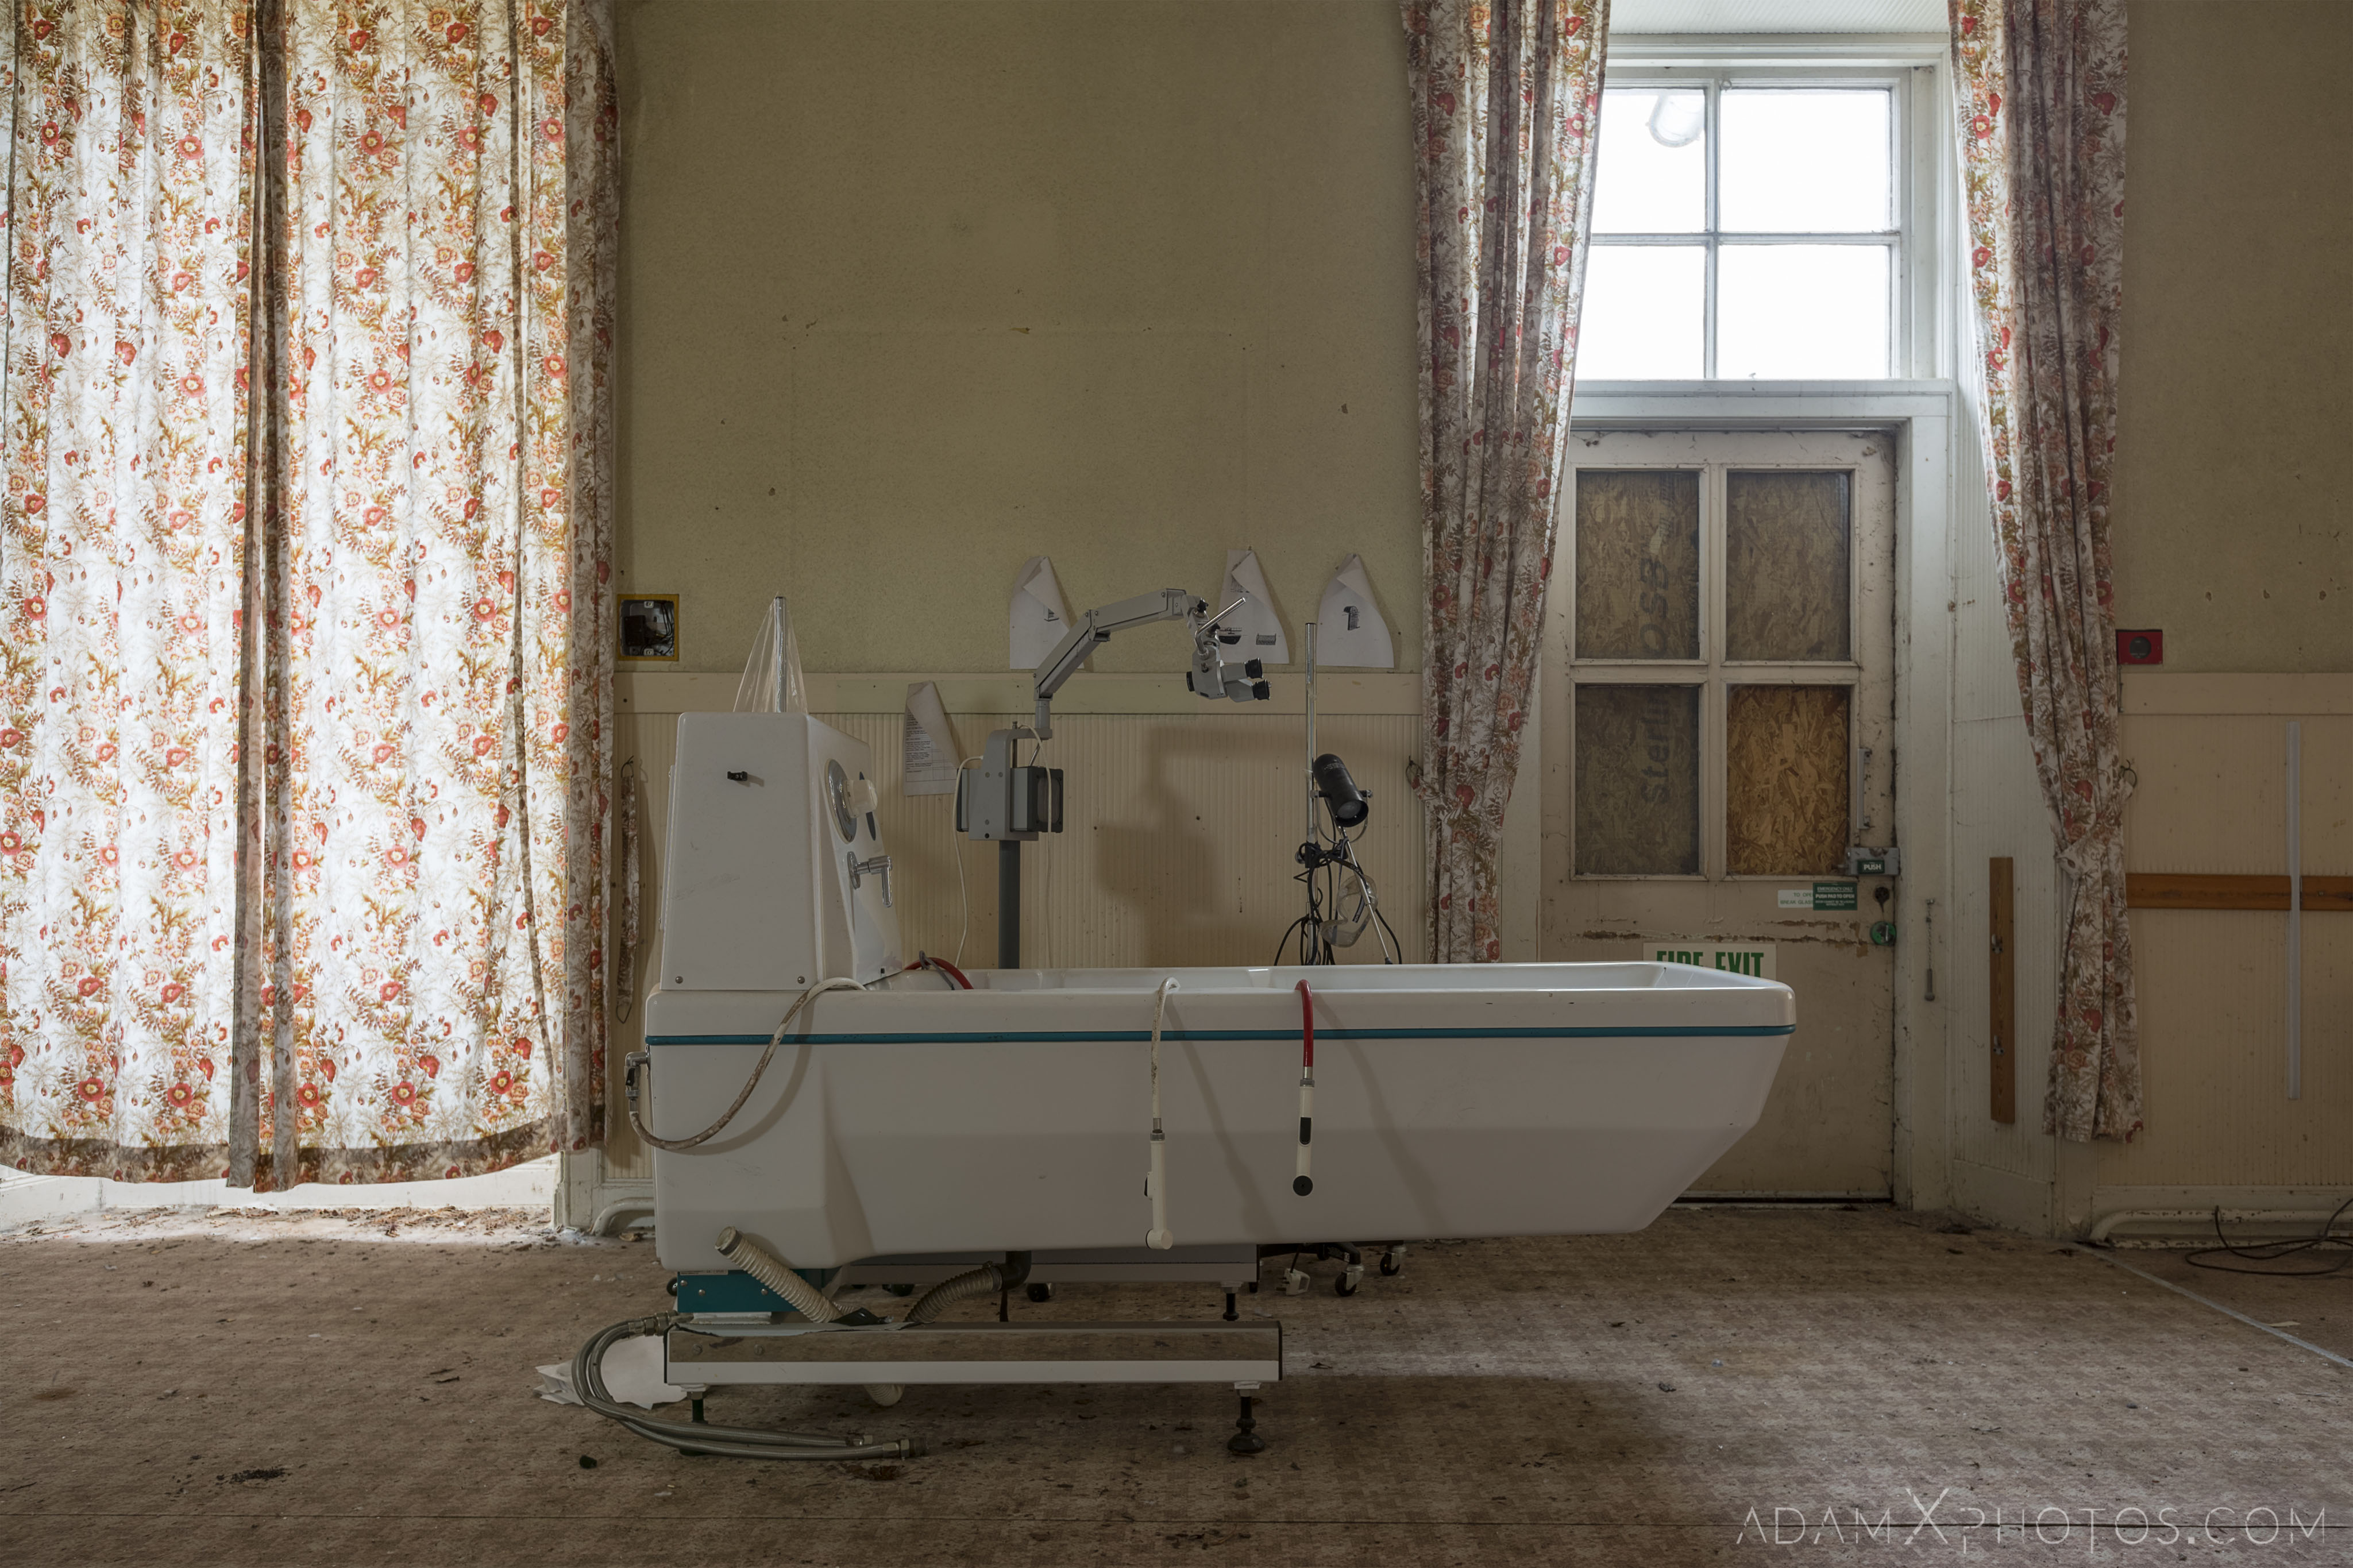 Mobile bath Stratheden Hospital Fife Scotland Adam X Urbex Urban Exploration Access 2018 Abandoned decay ruins lost forgotten derelict location creepy haunting eerie